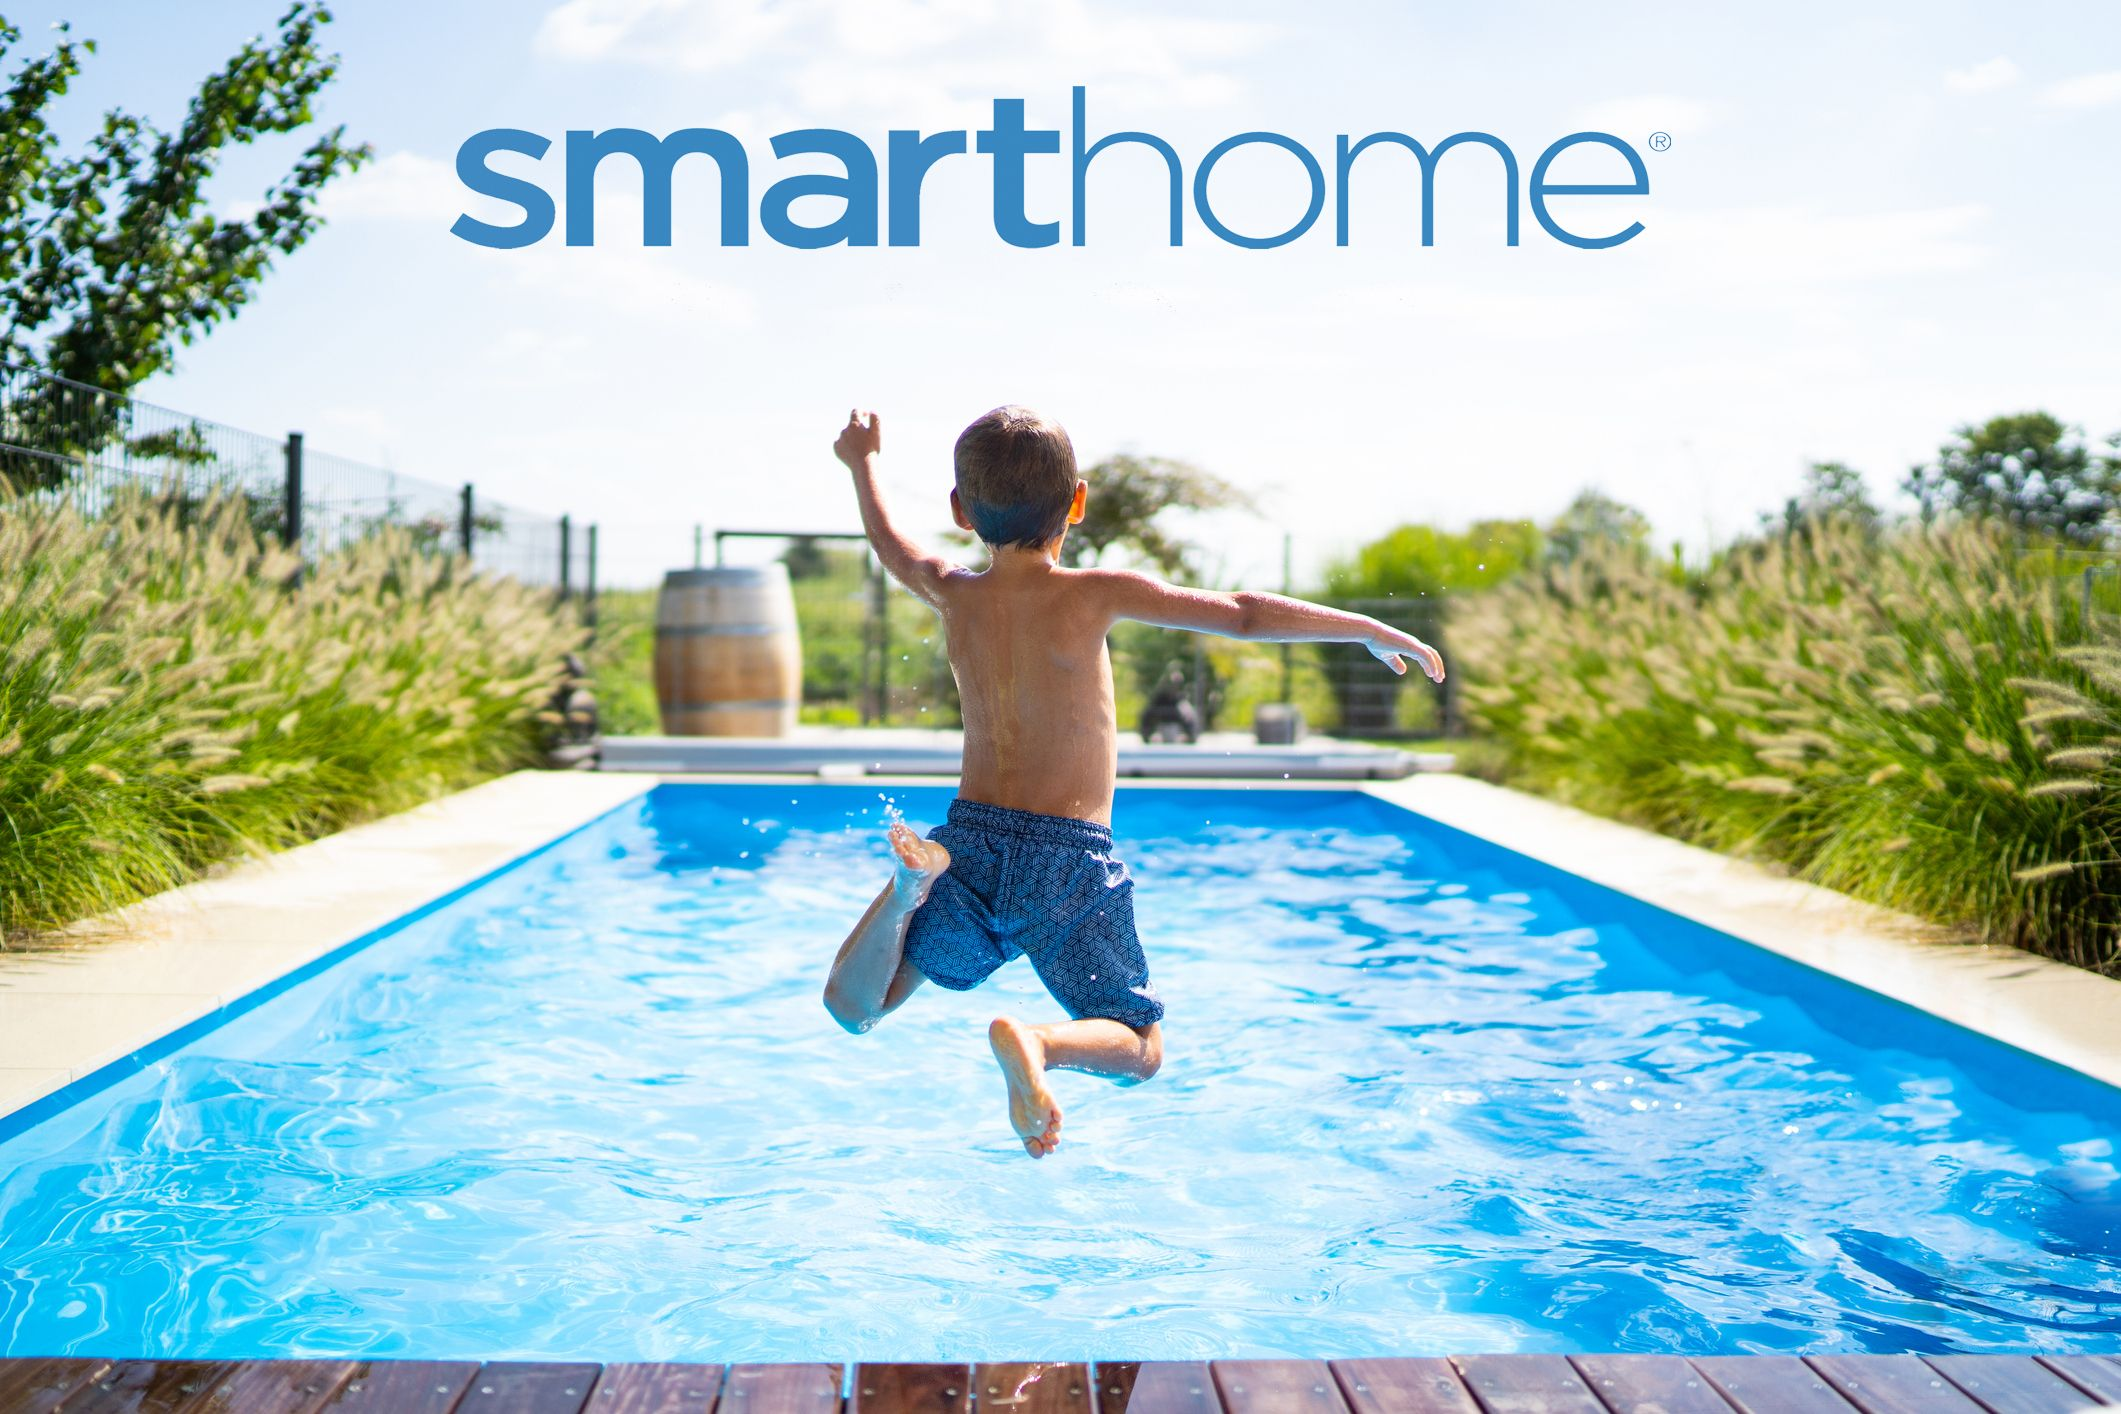 Pool Monitoring And Leak Detectors Secure Your Pool With Smarthome In 2020 Pool Swimming Pools Swimming Pool House